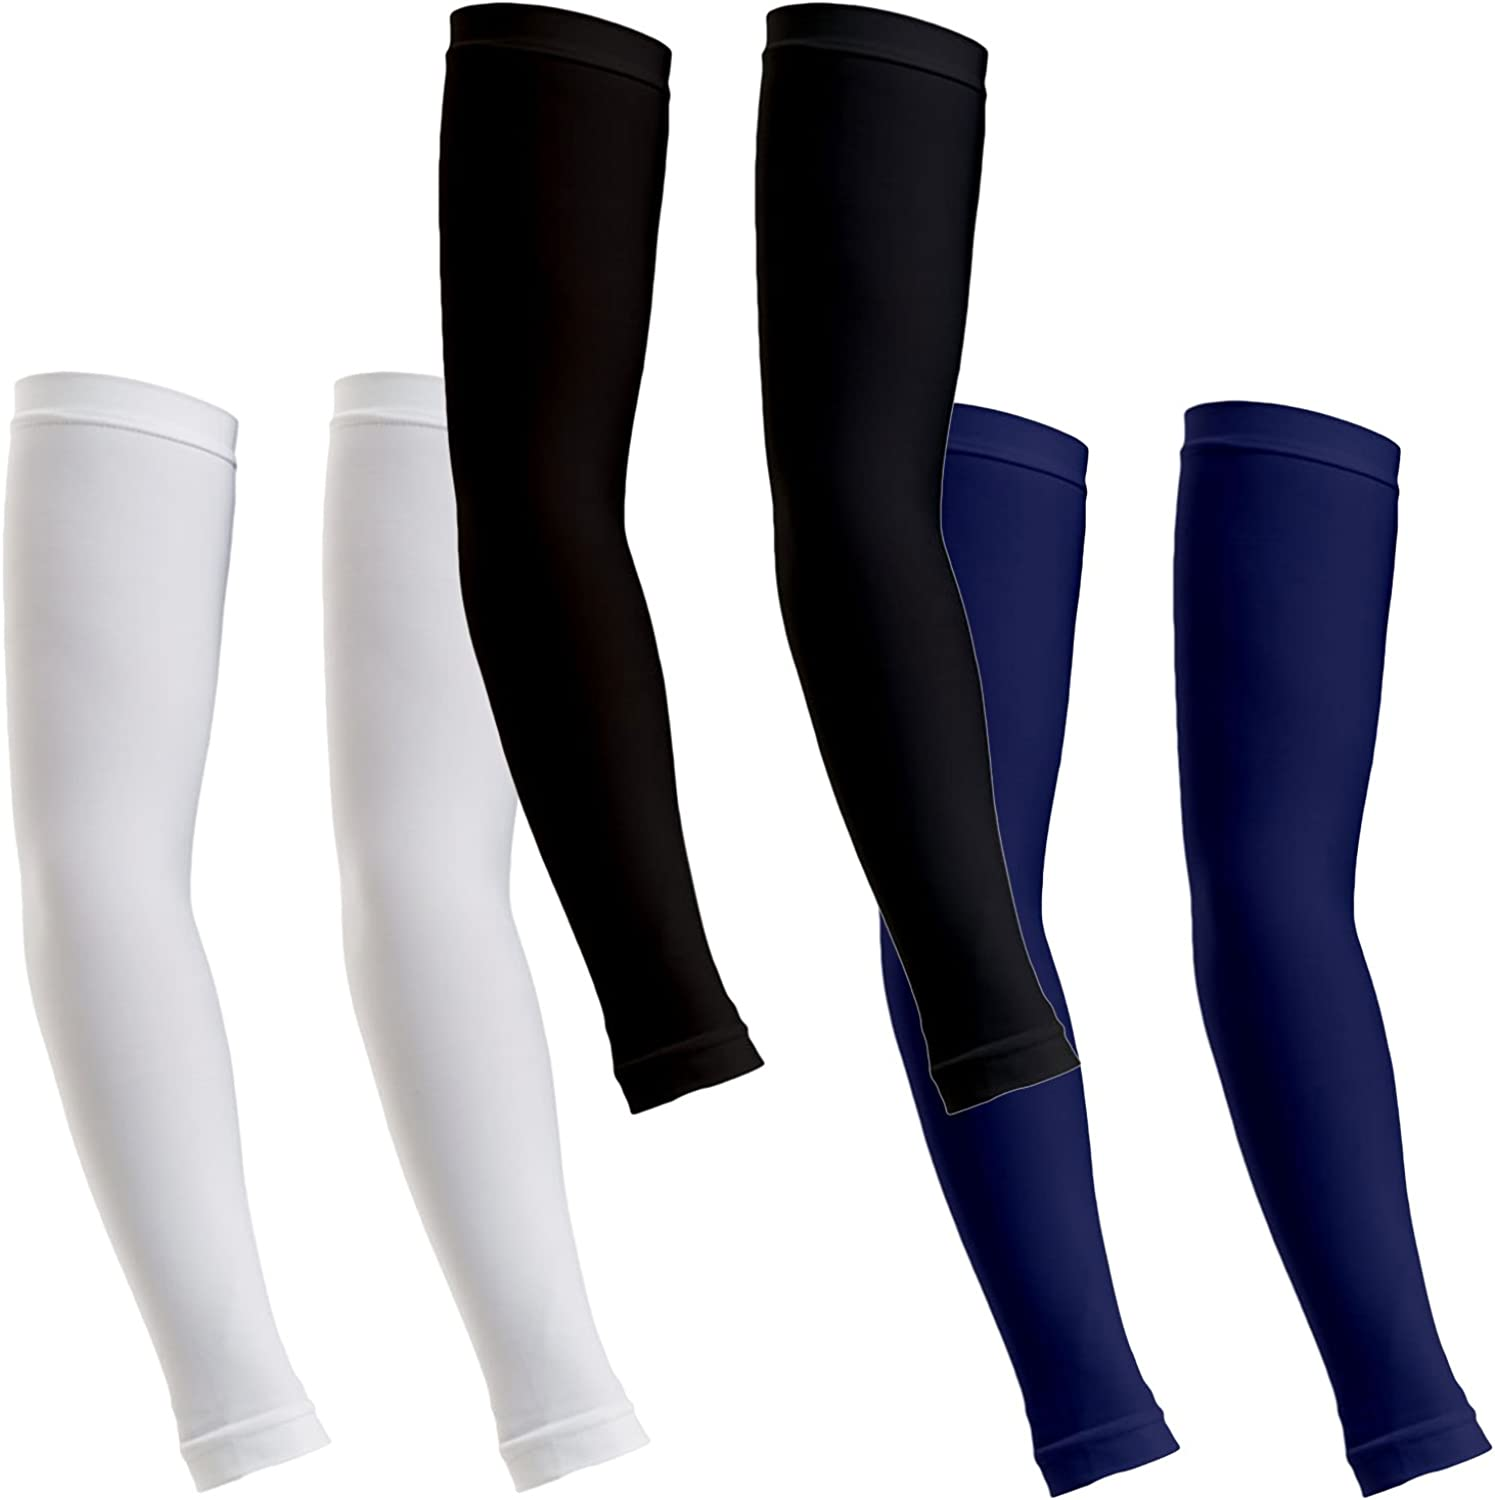 ReLive Women's Microfiber Stretchy Arm Sleeves (1 Pair)